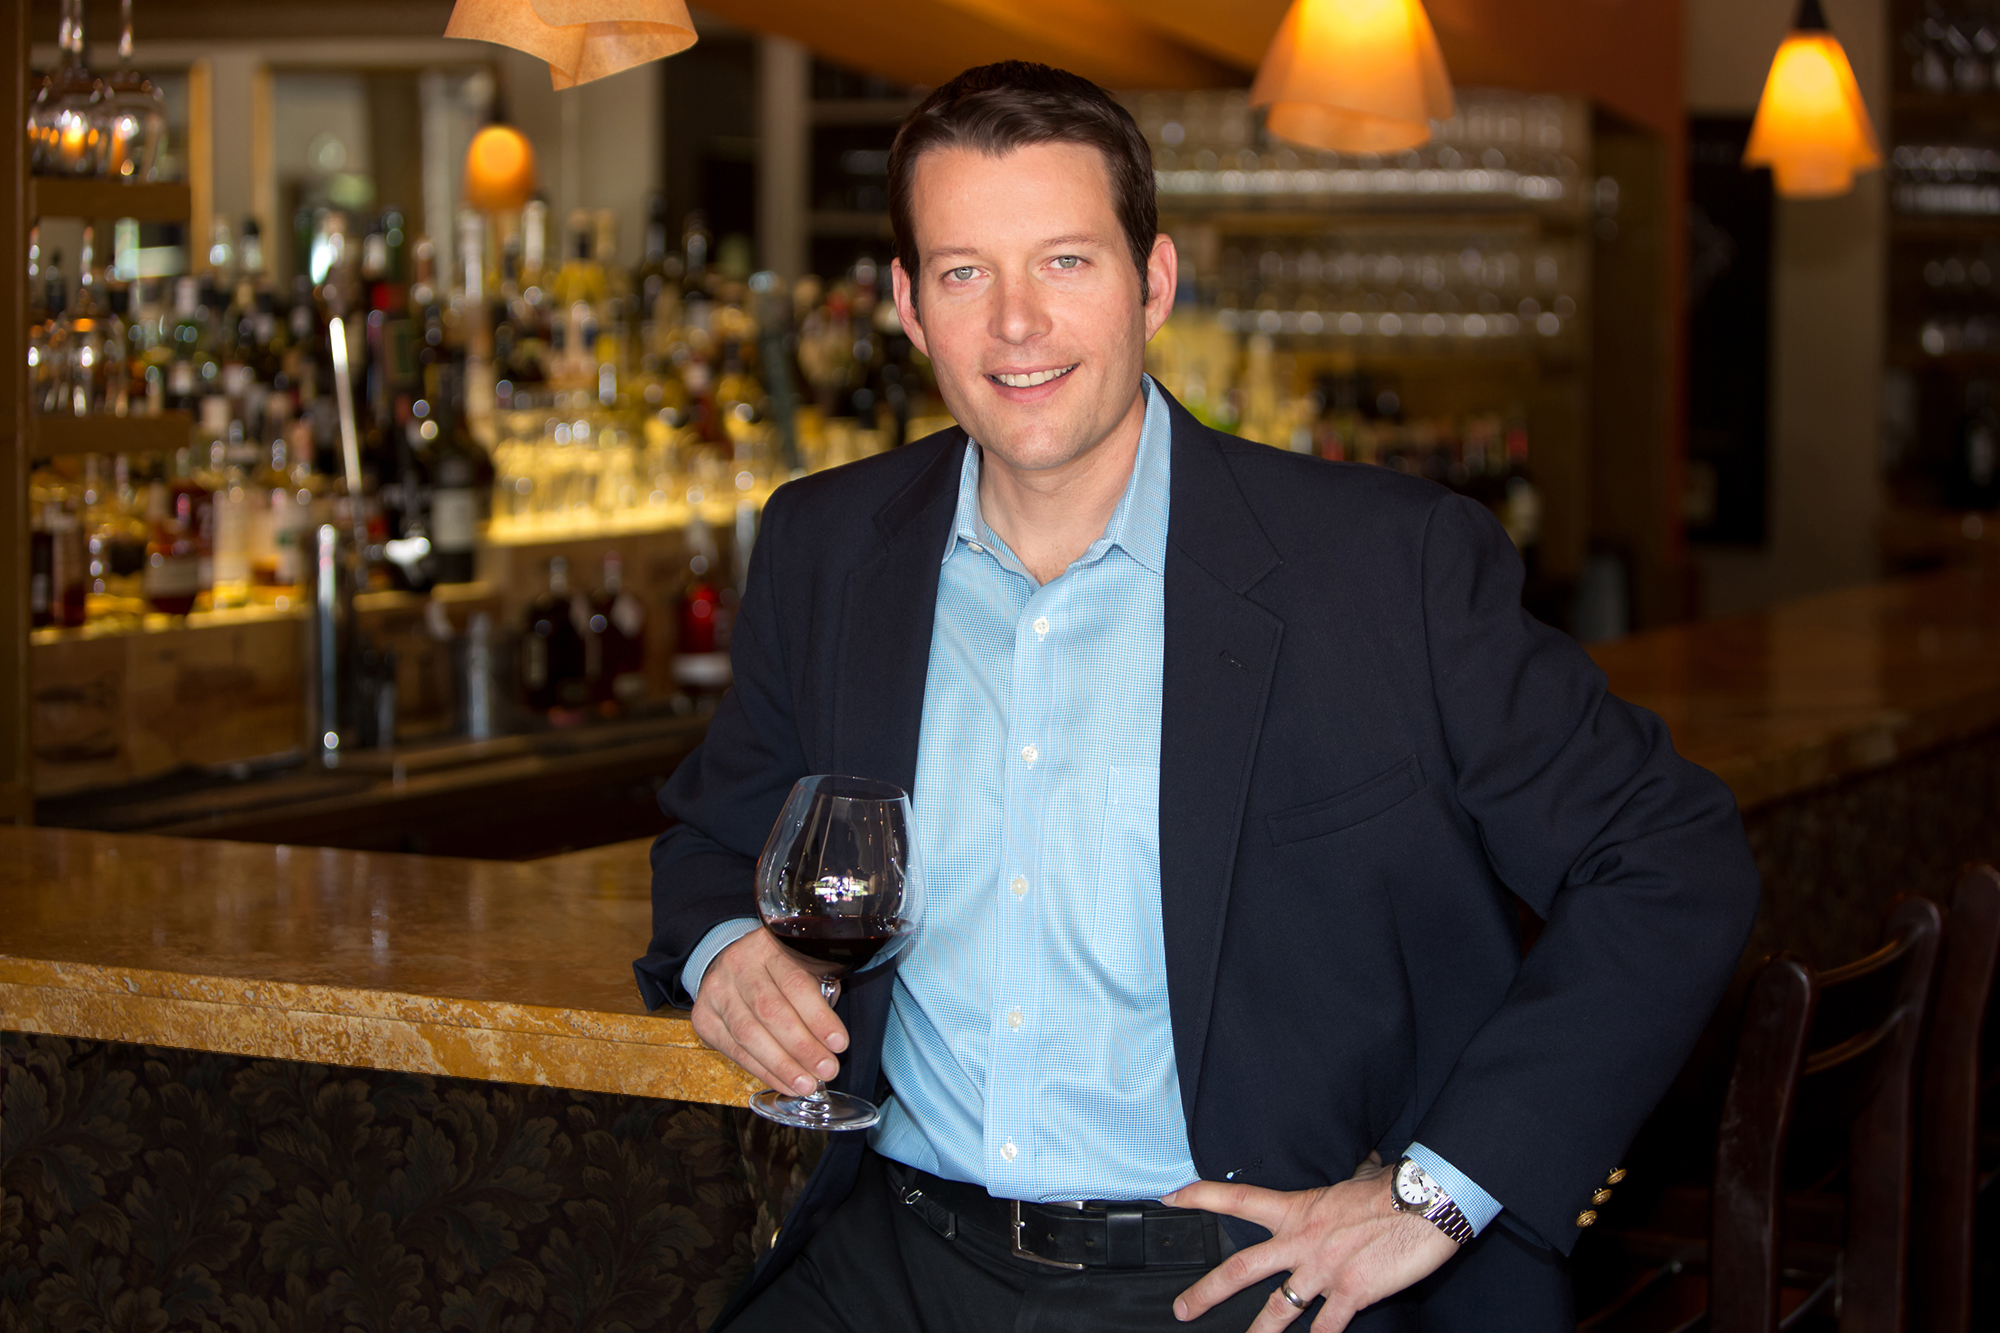 Ryan Fletter, owner & wine director